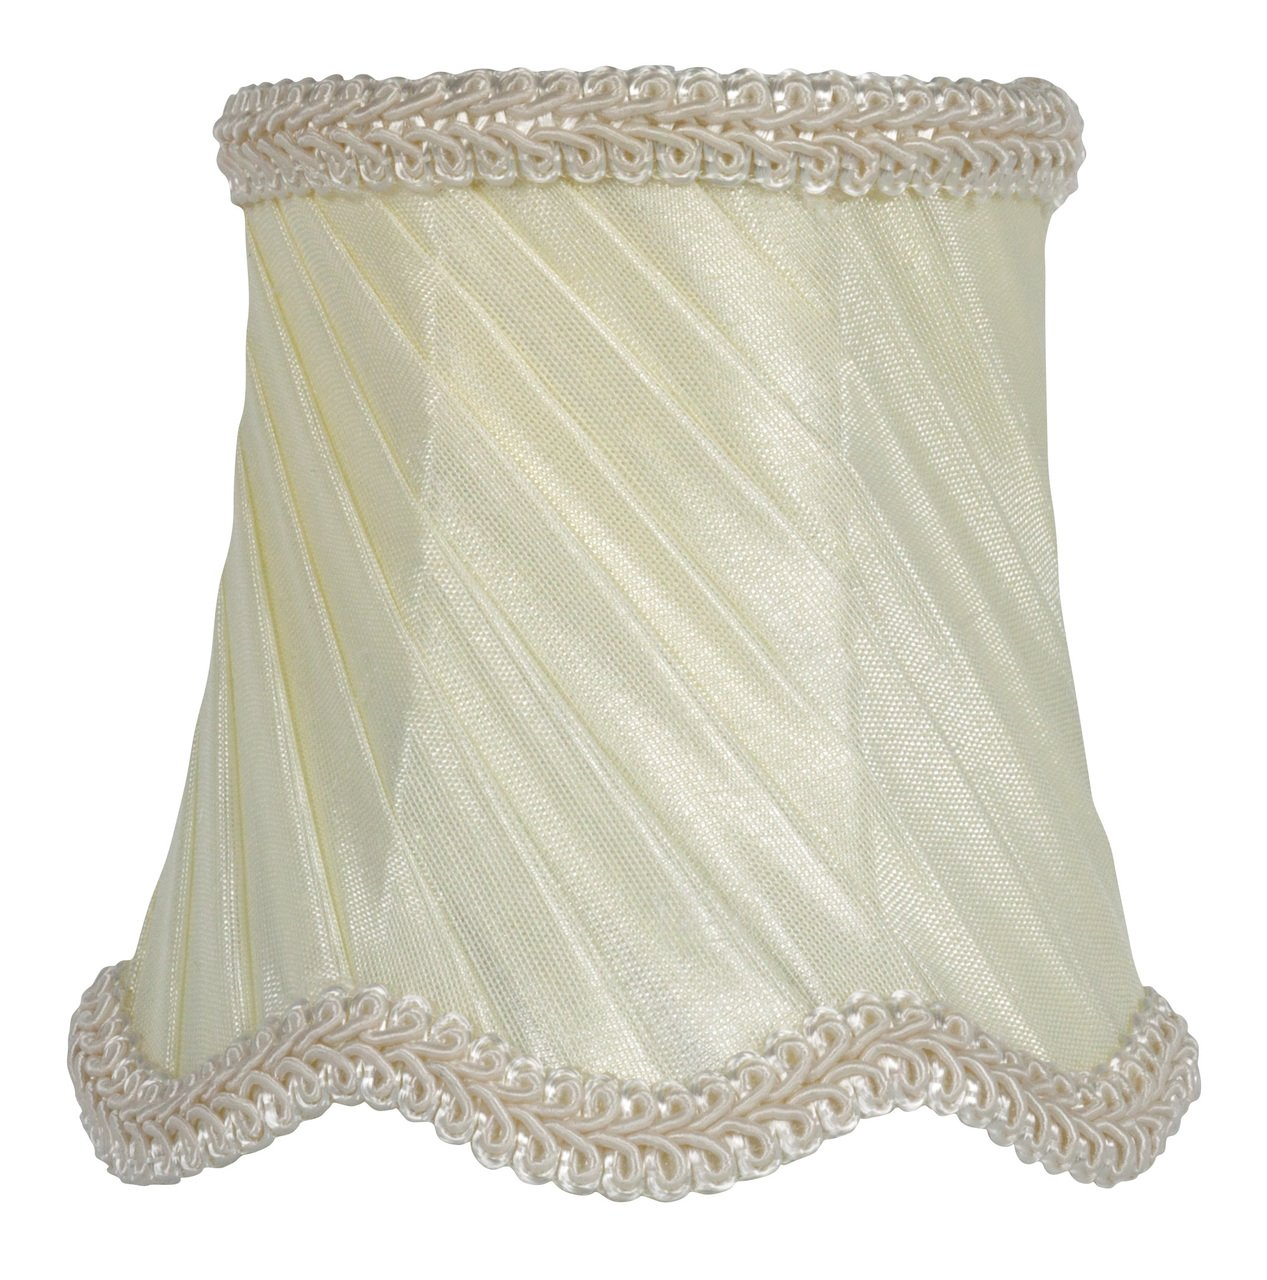 Upgradelights 3 Inch Drum Clip On Chandelier Lamp Shade in Eggshell Silk with Pleated Swirl Embellishment